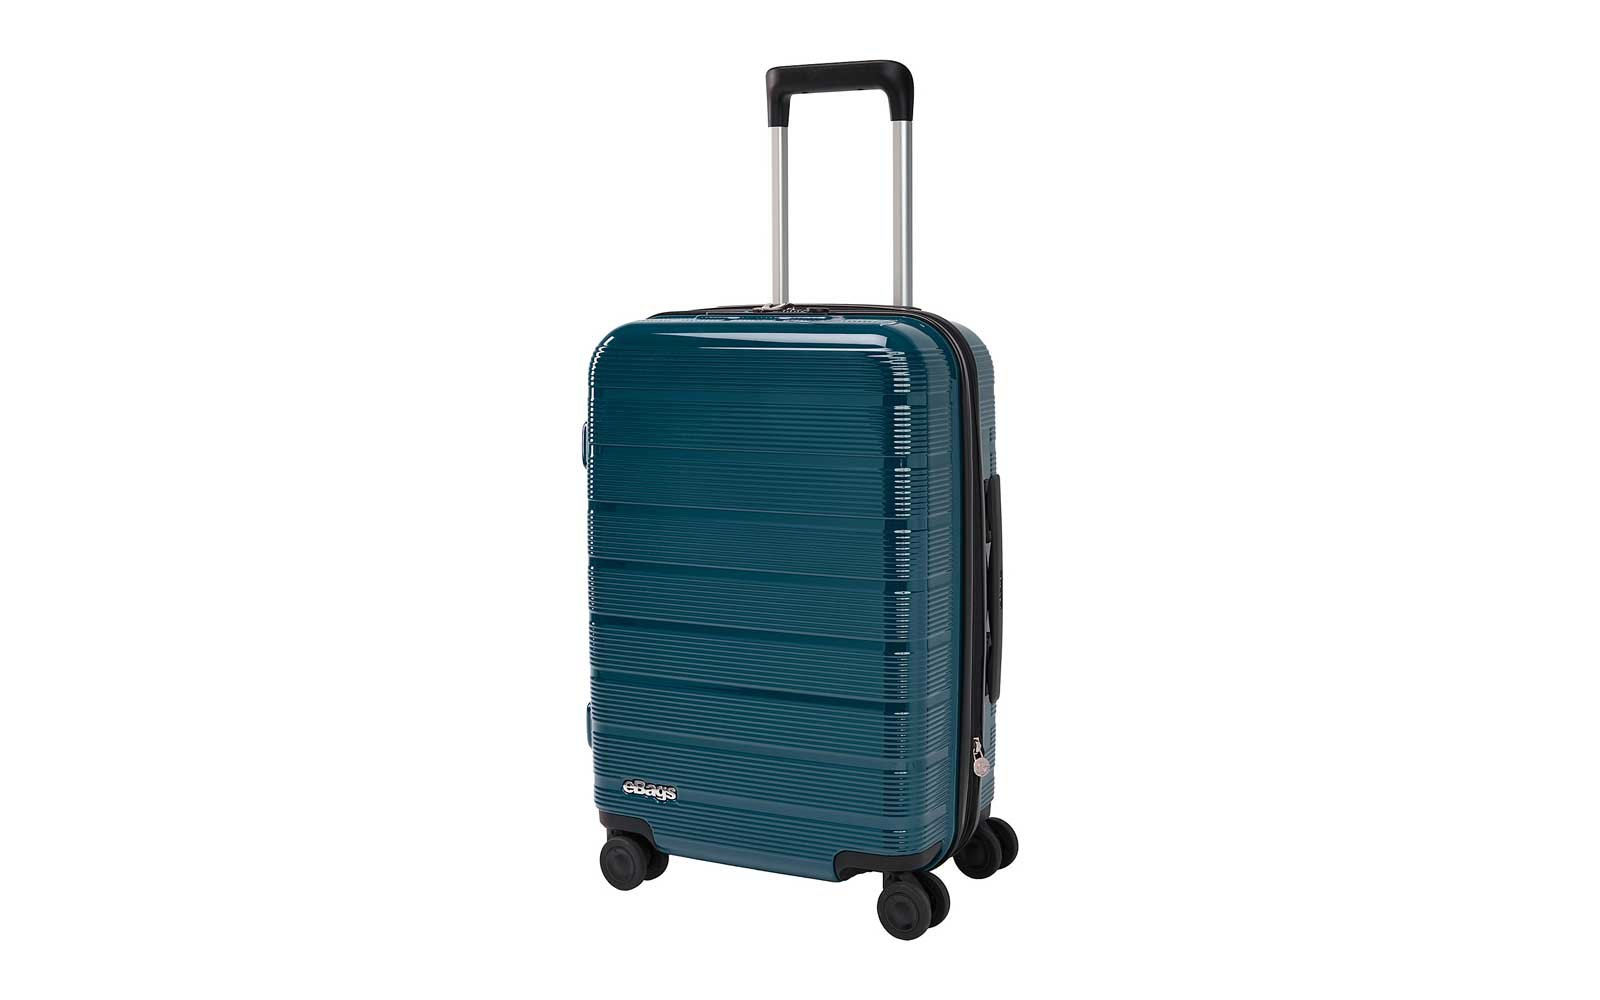 Ebags Fortis Hardside Spinner Carry On Luggage